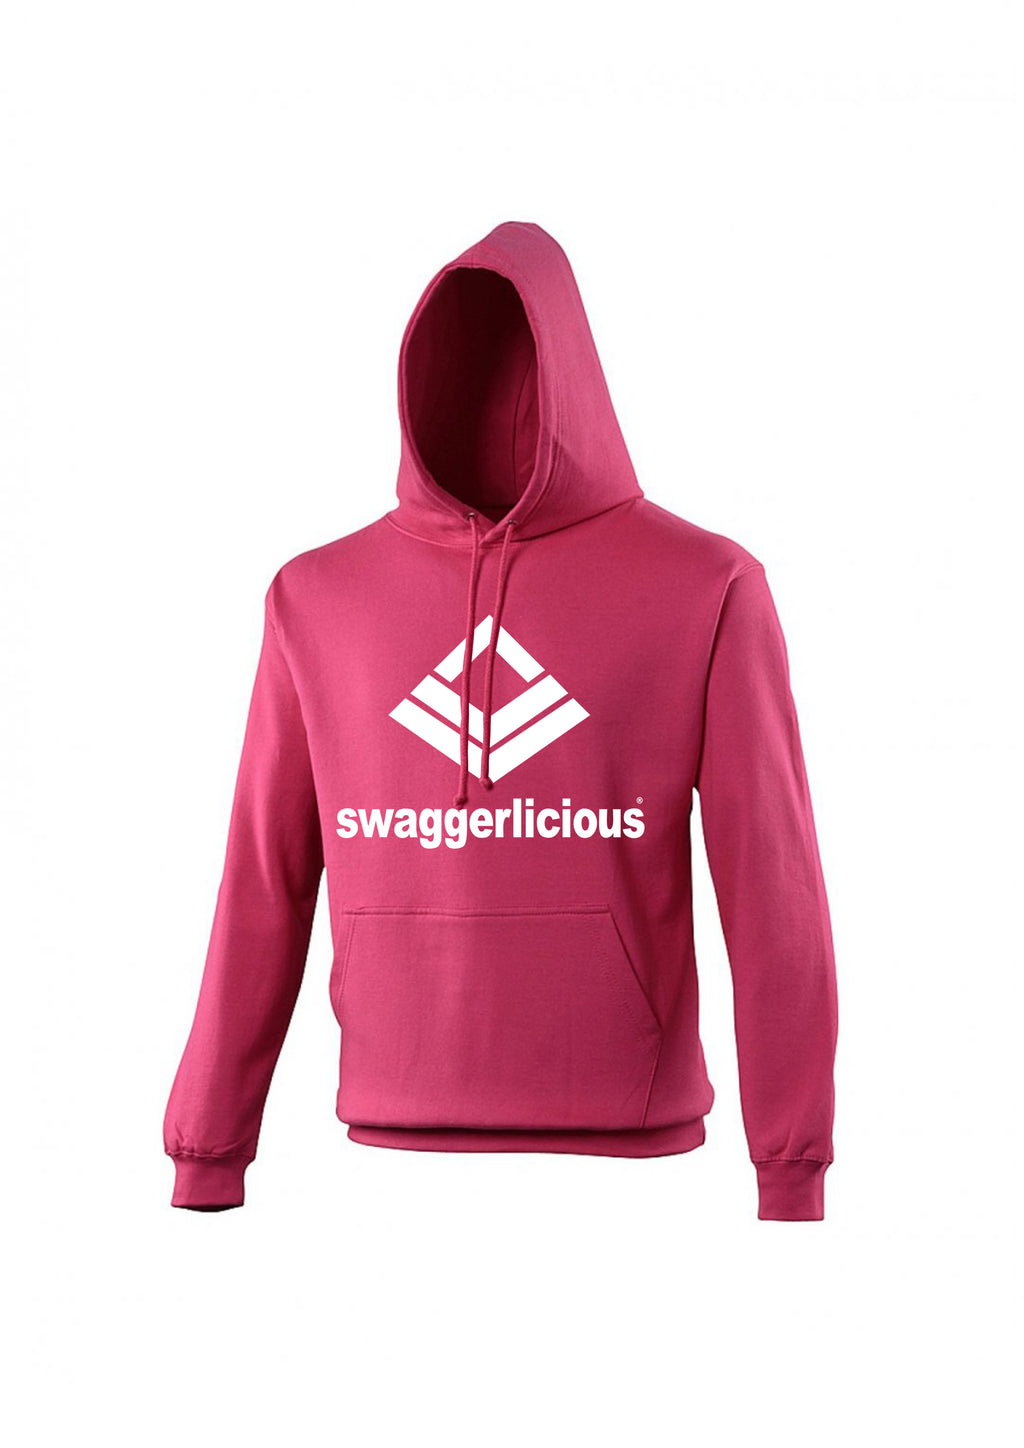 Swaggerlicious Classic Sports Fuchsia Hoodie - swaggerlicious-clothing.com